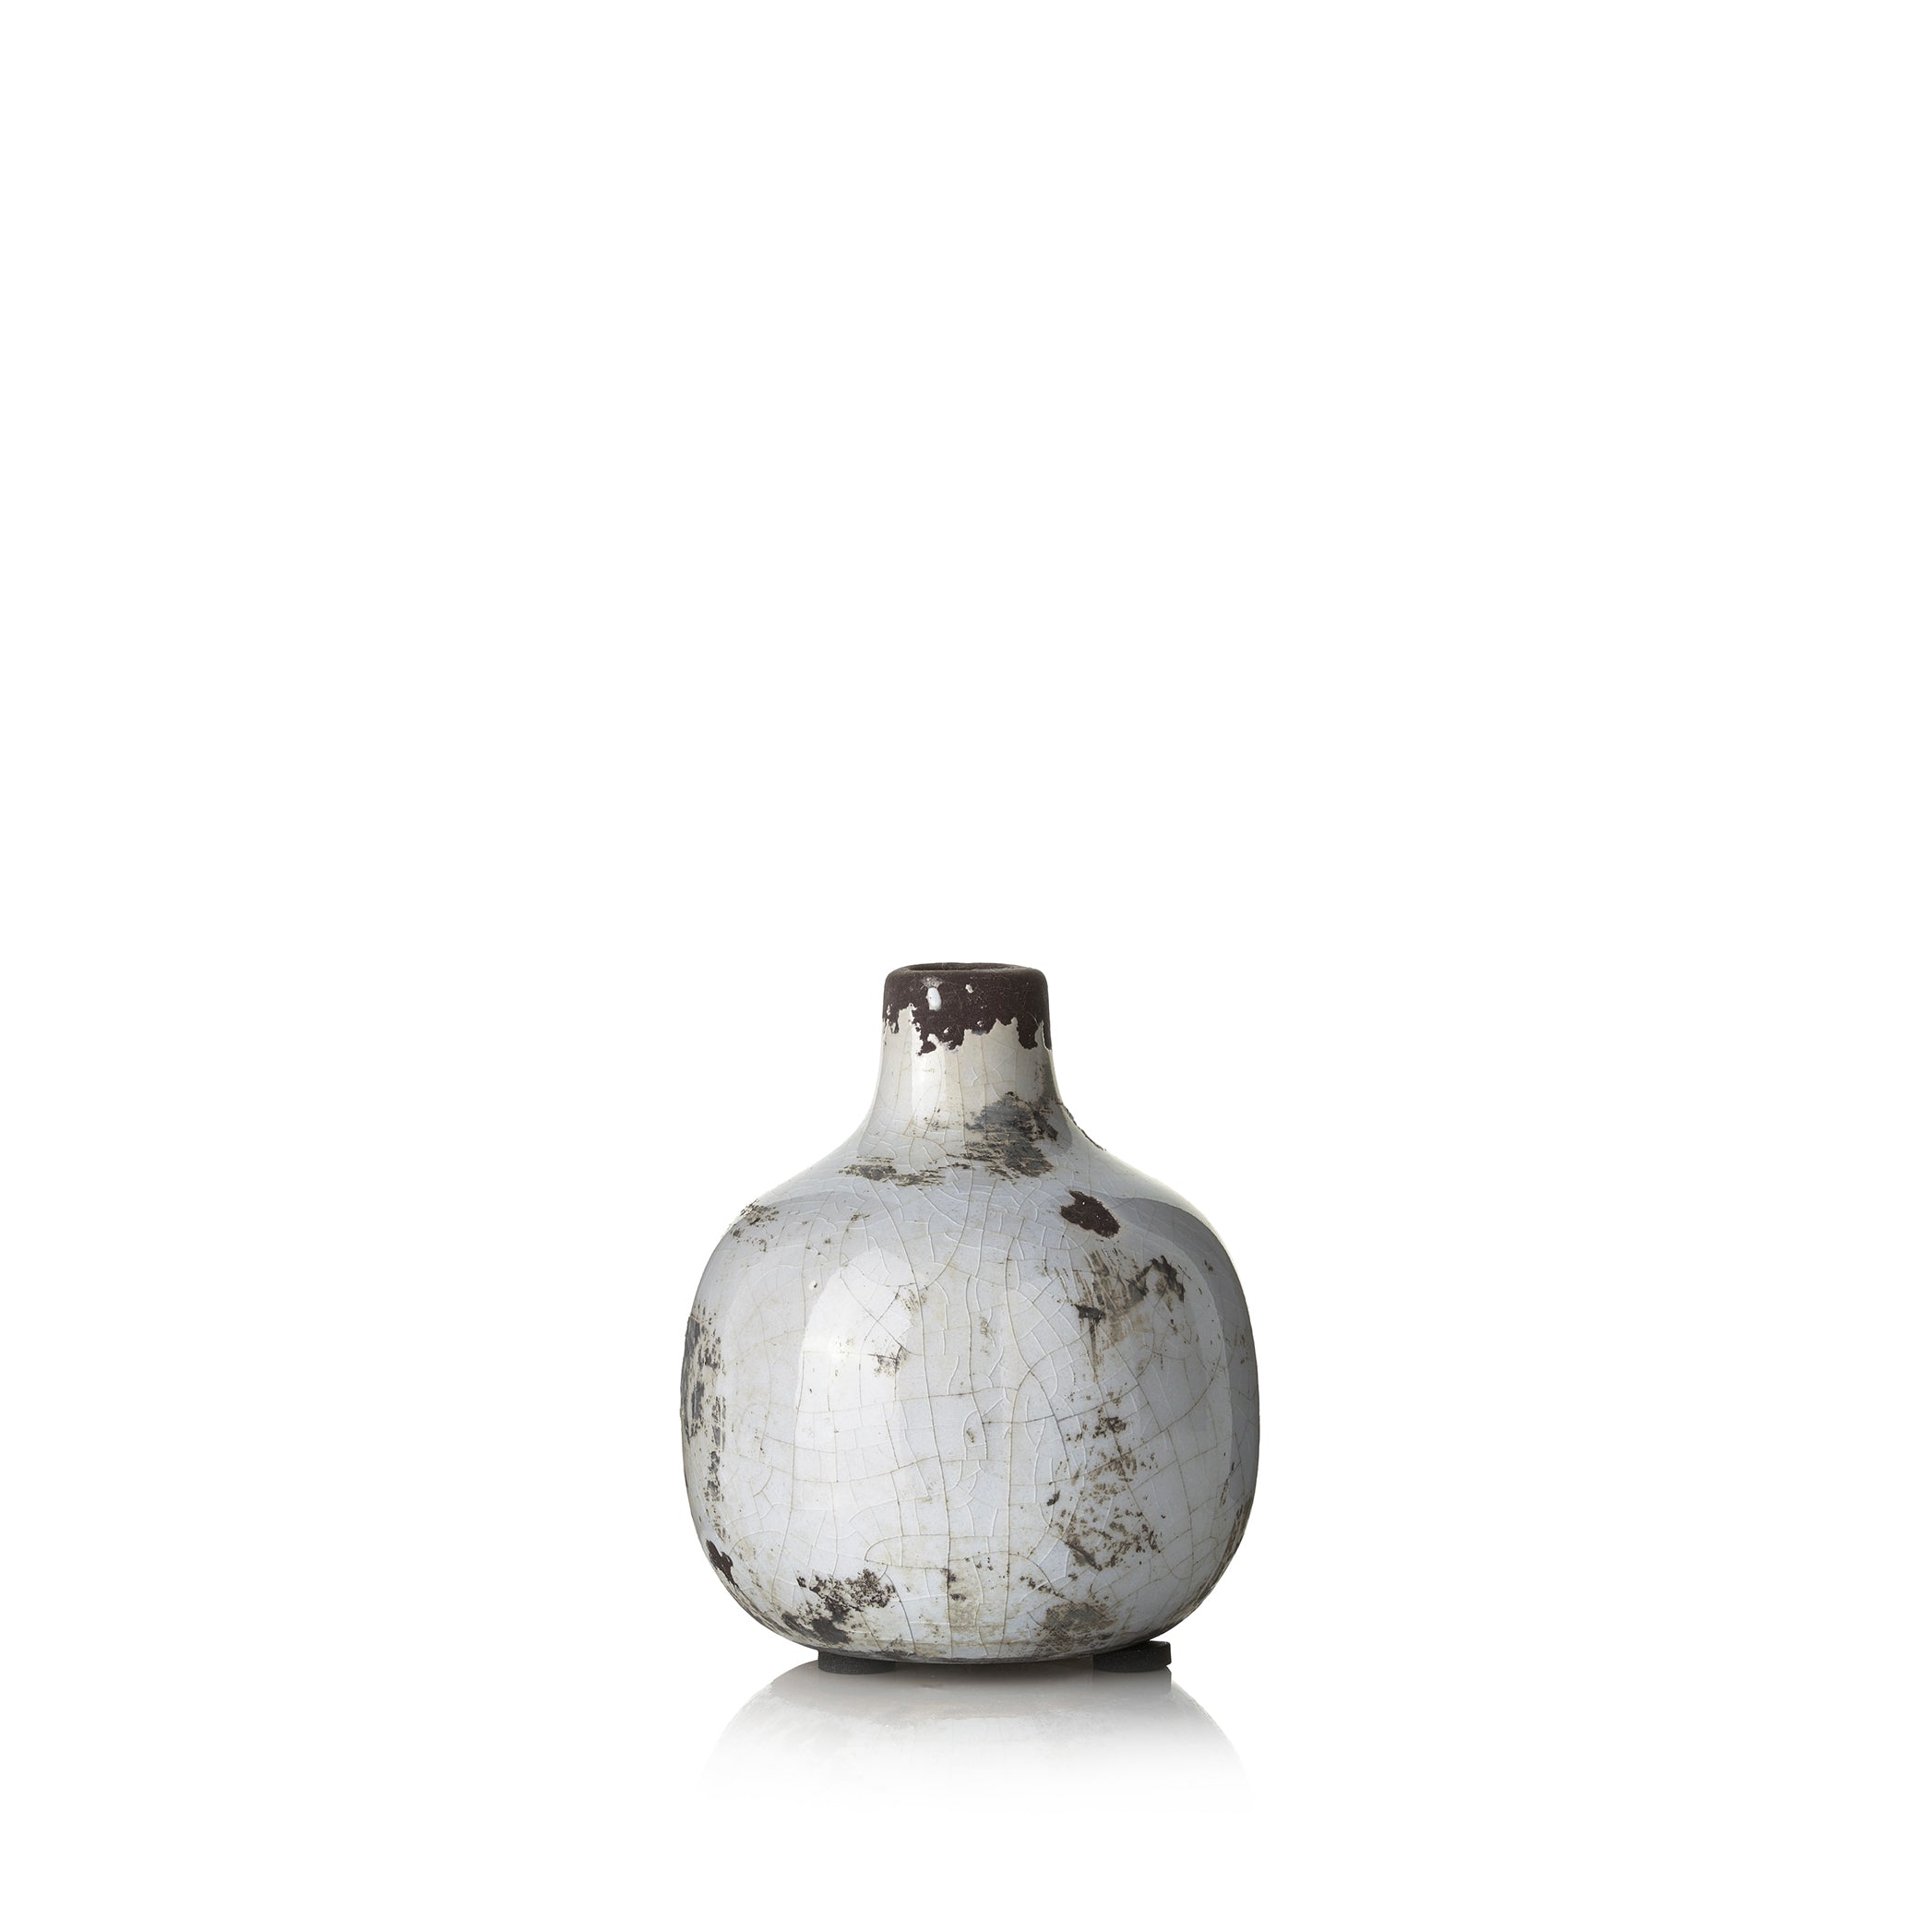 Ceramic Crackled Vase in White